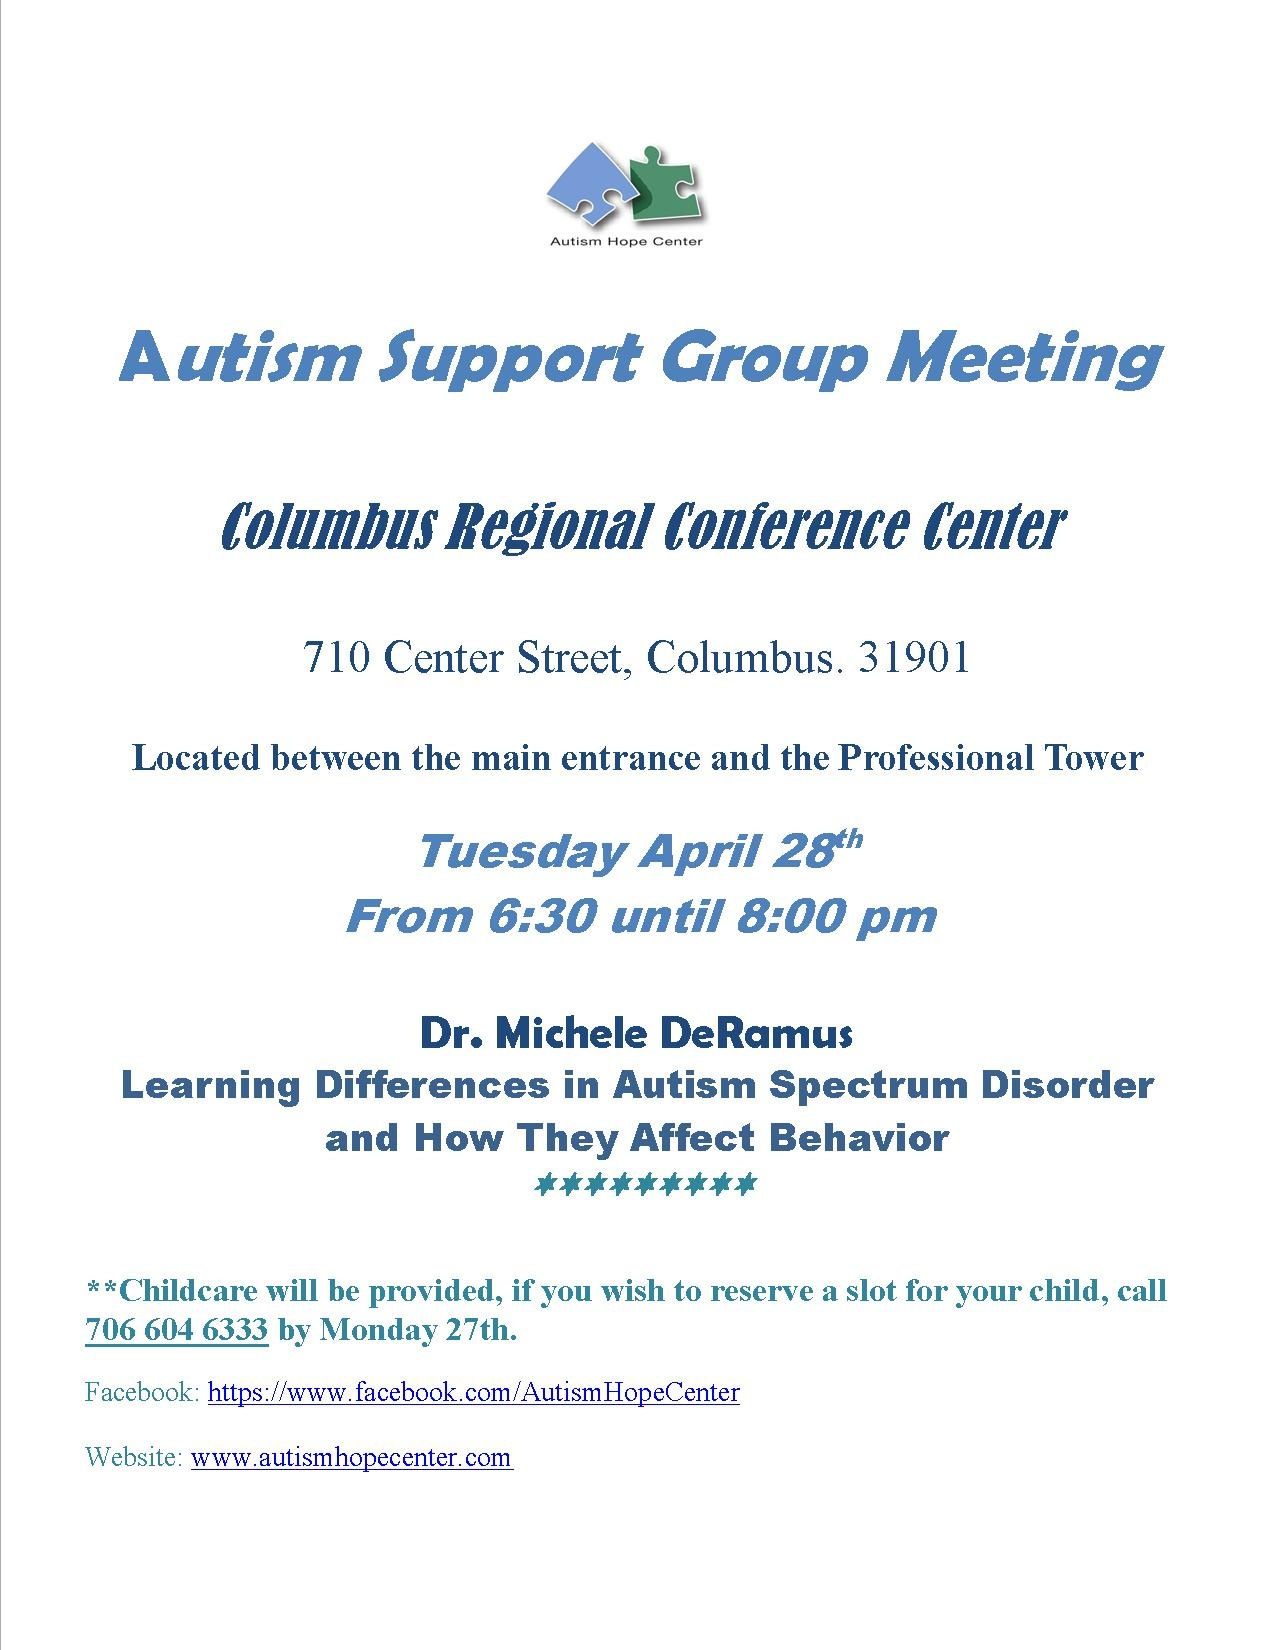 dr deramus speaks about autism spectrum disorder in recognition support group meeting